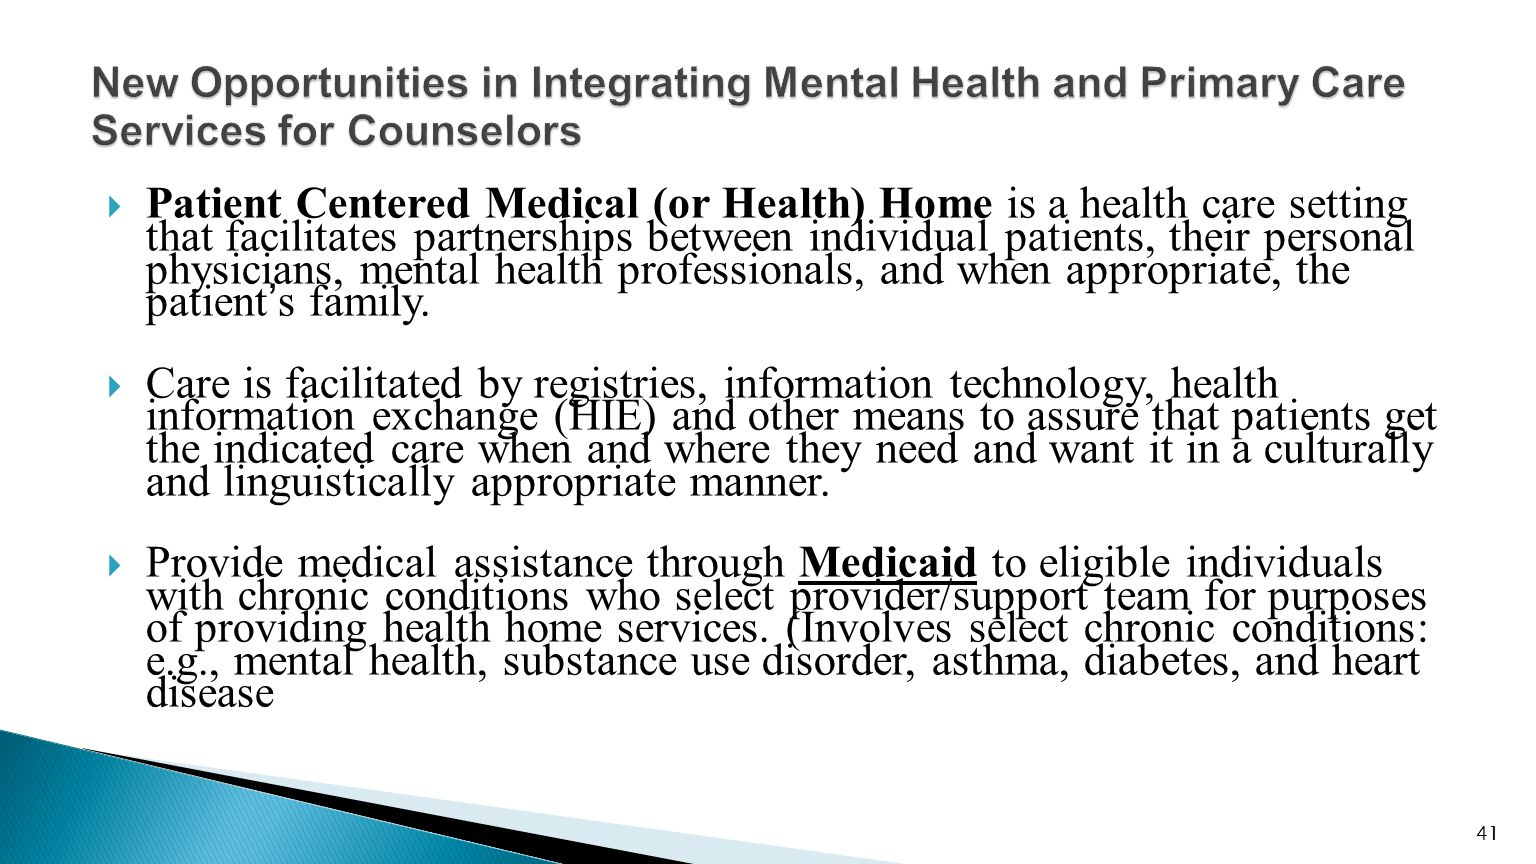  Patient Centered Medical (or Health) Home is a health care setting that facilitates partnerships between individual patients, their personal physicians, mental health professionals, and when appropriate, the patient's family.